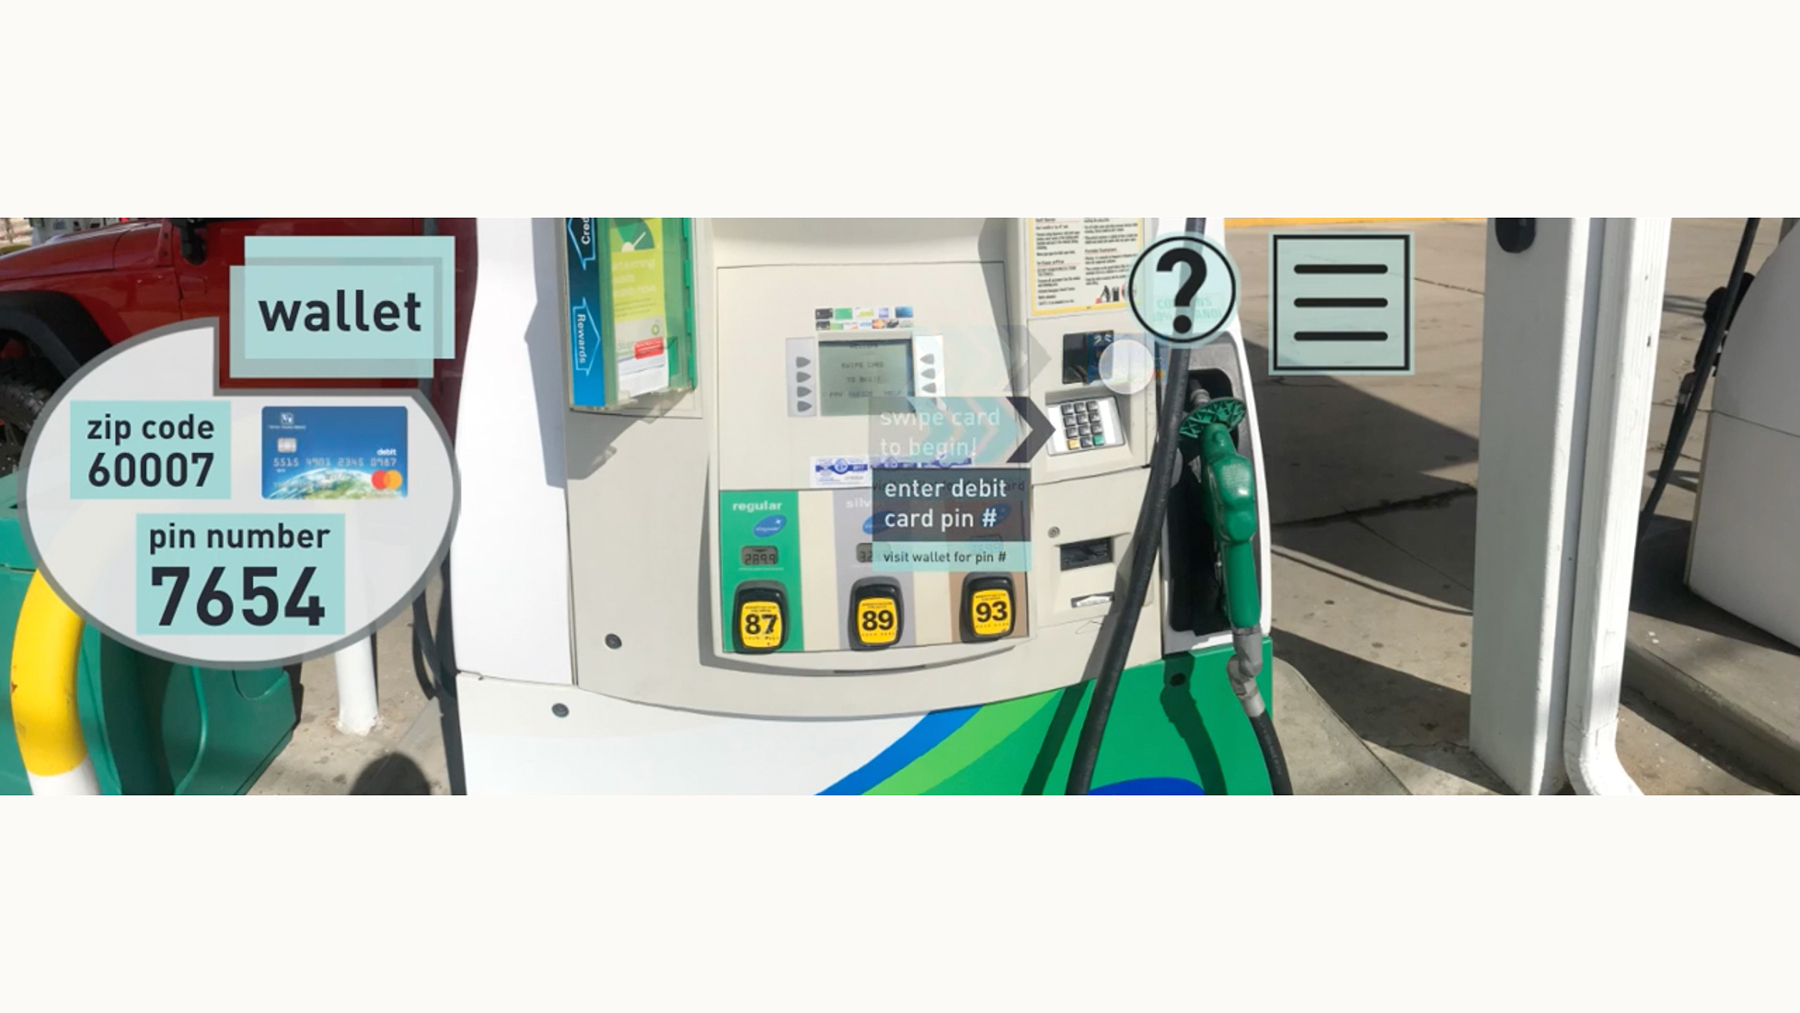 University of Illinois design students created immersive reality scenarios to help people who are soon to be released from prison meet certain challenges, such as learning to pay at the pump for gas. photo courtesy of LIsa Mercer